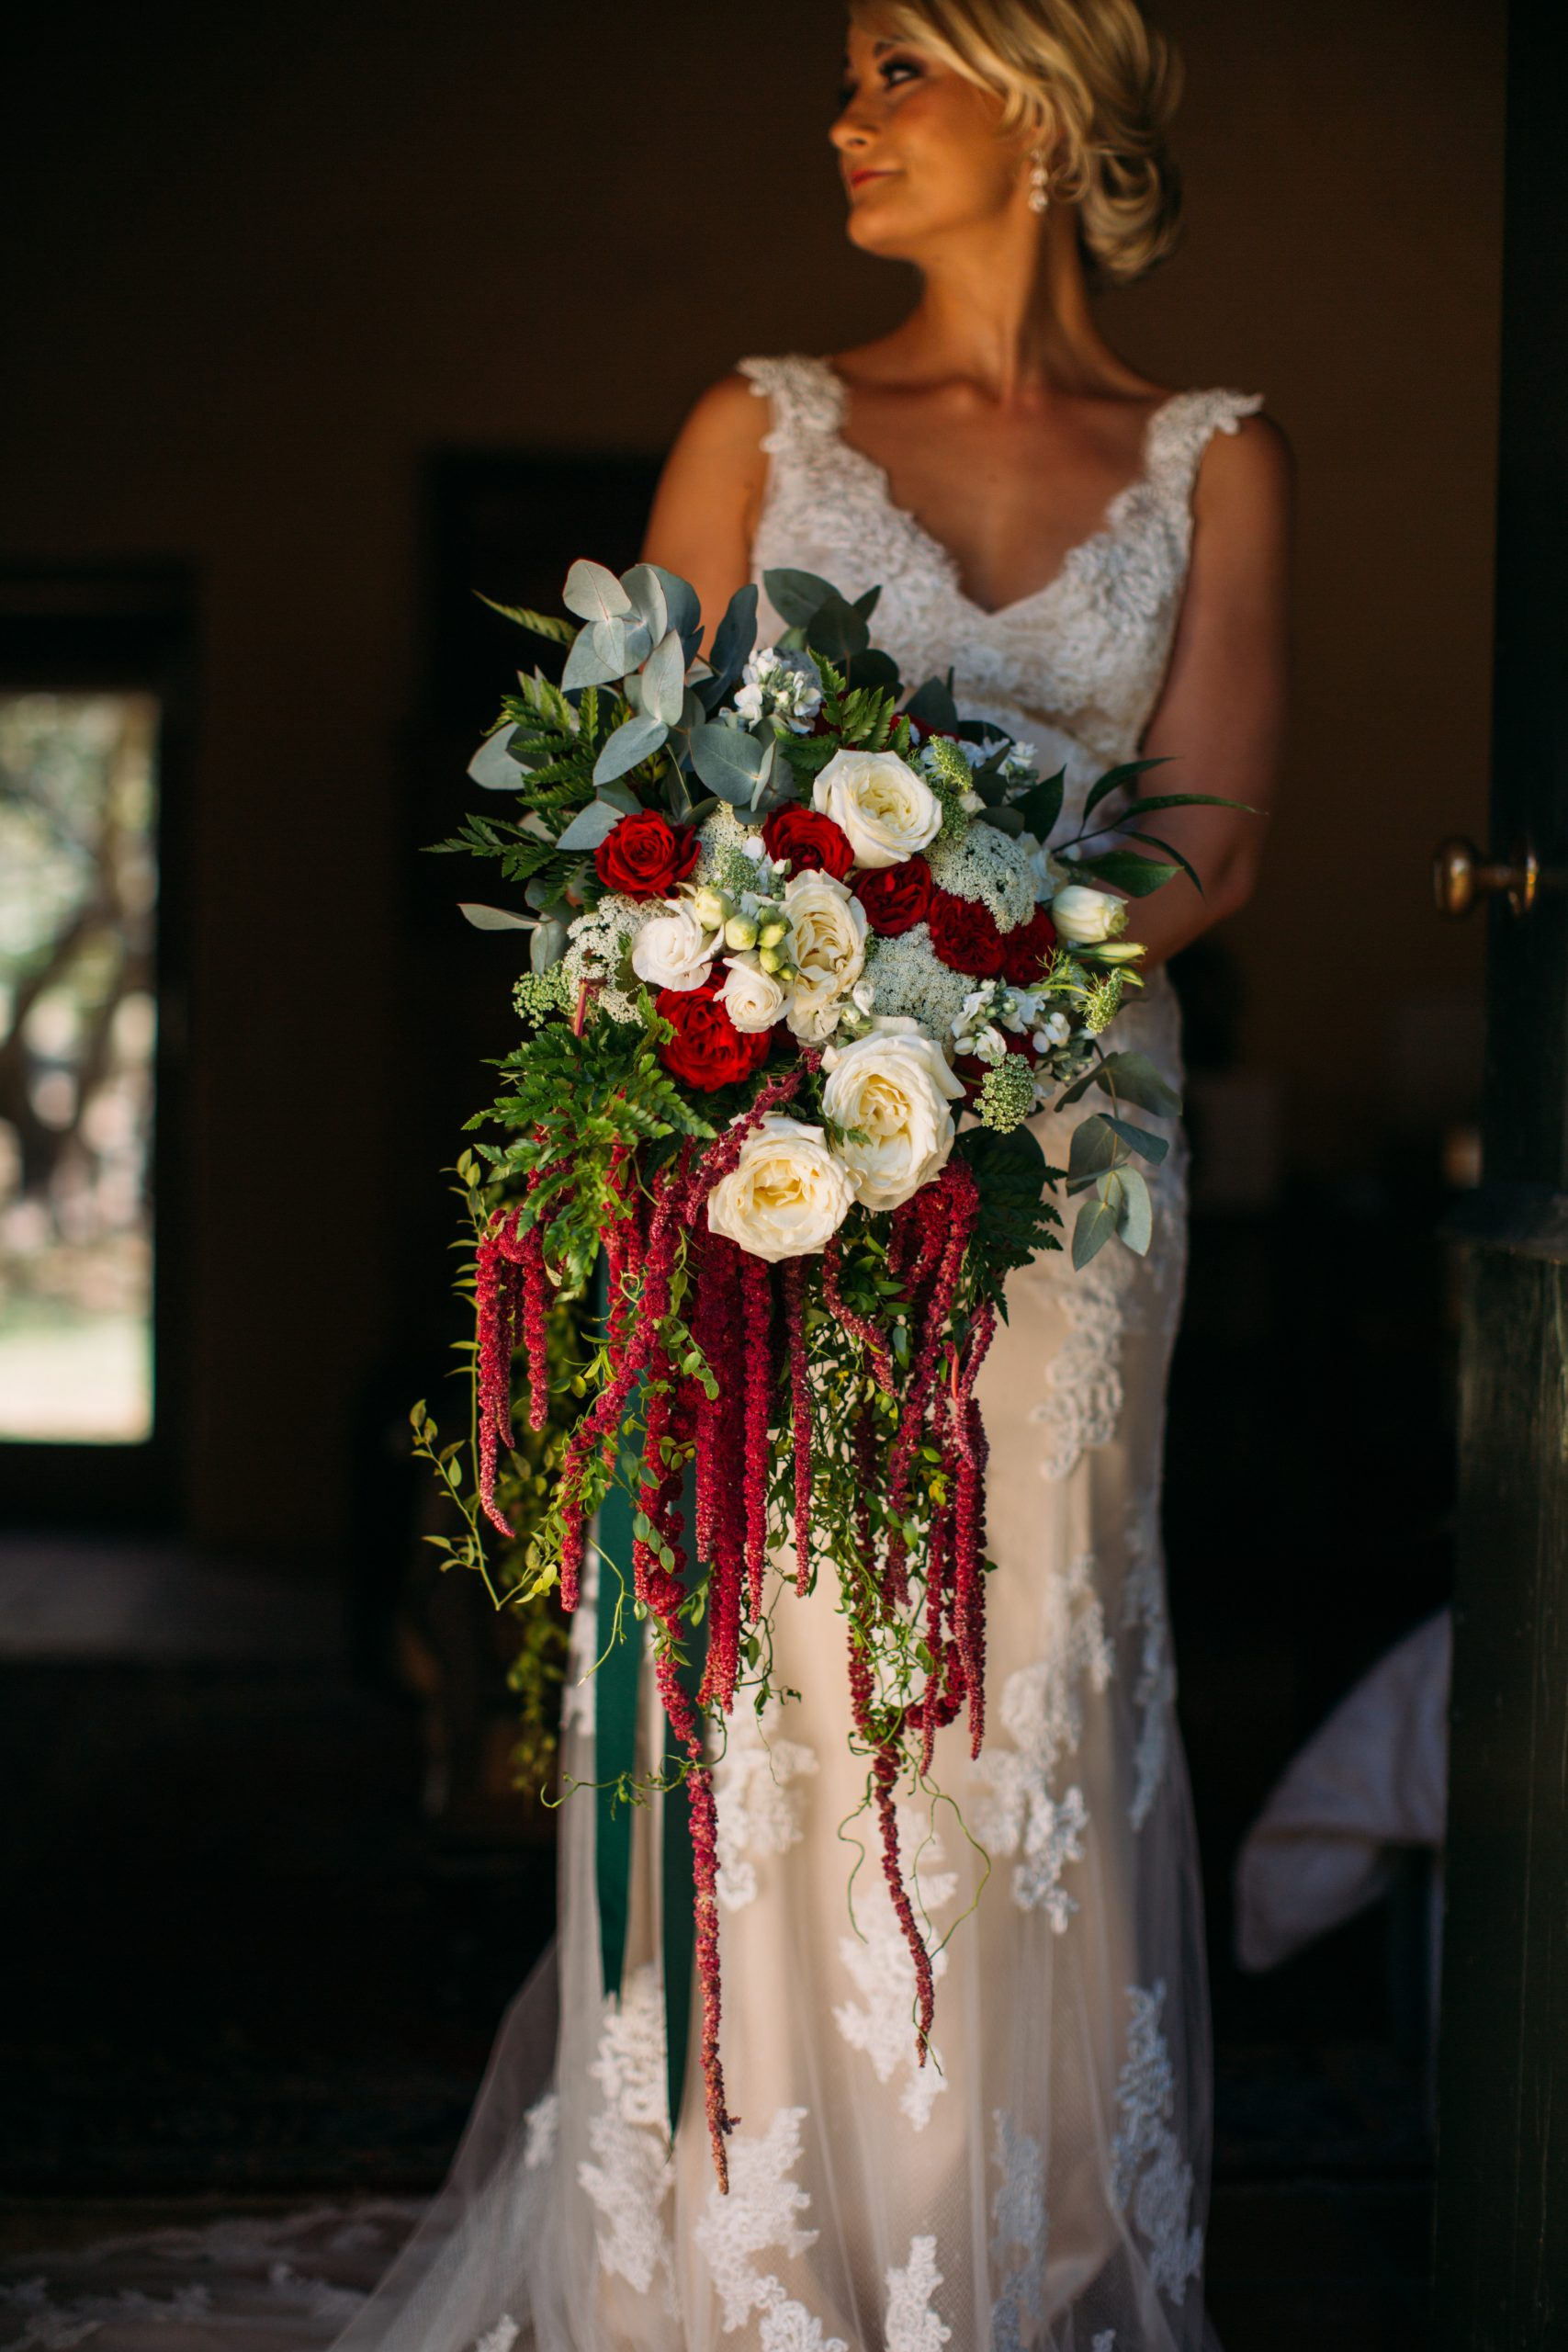 Bride Holding A Bouquet Of Flowers scaled